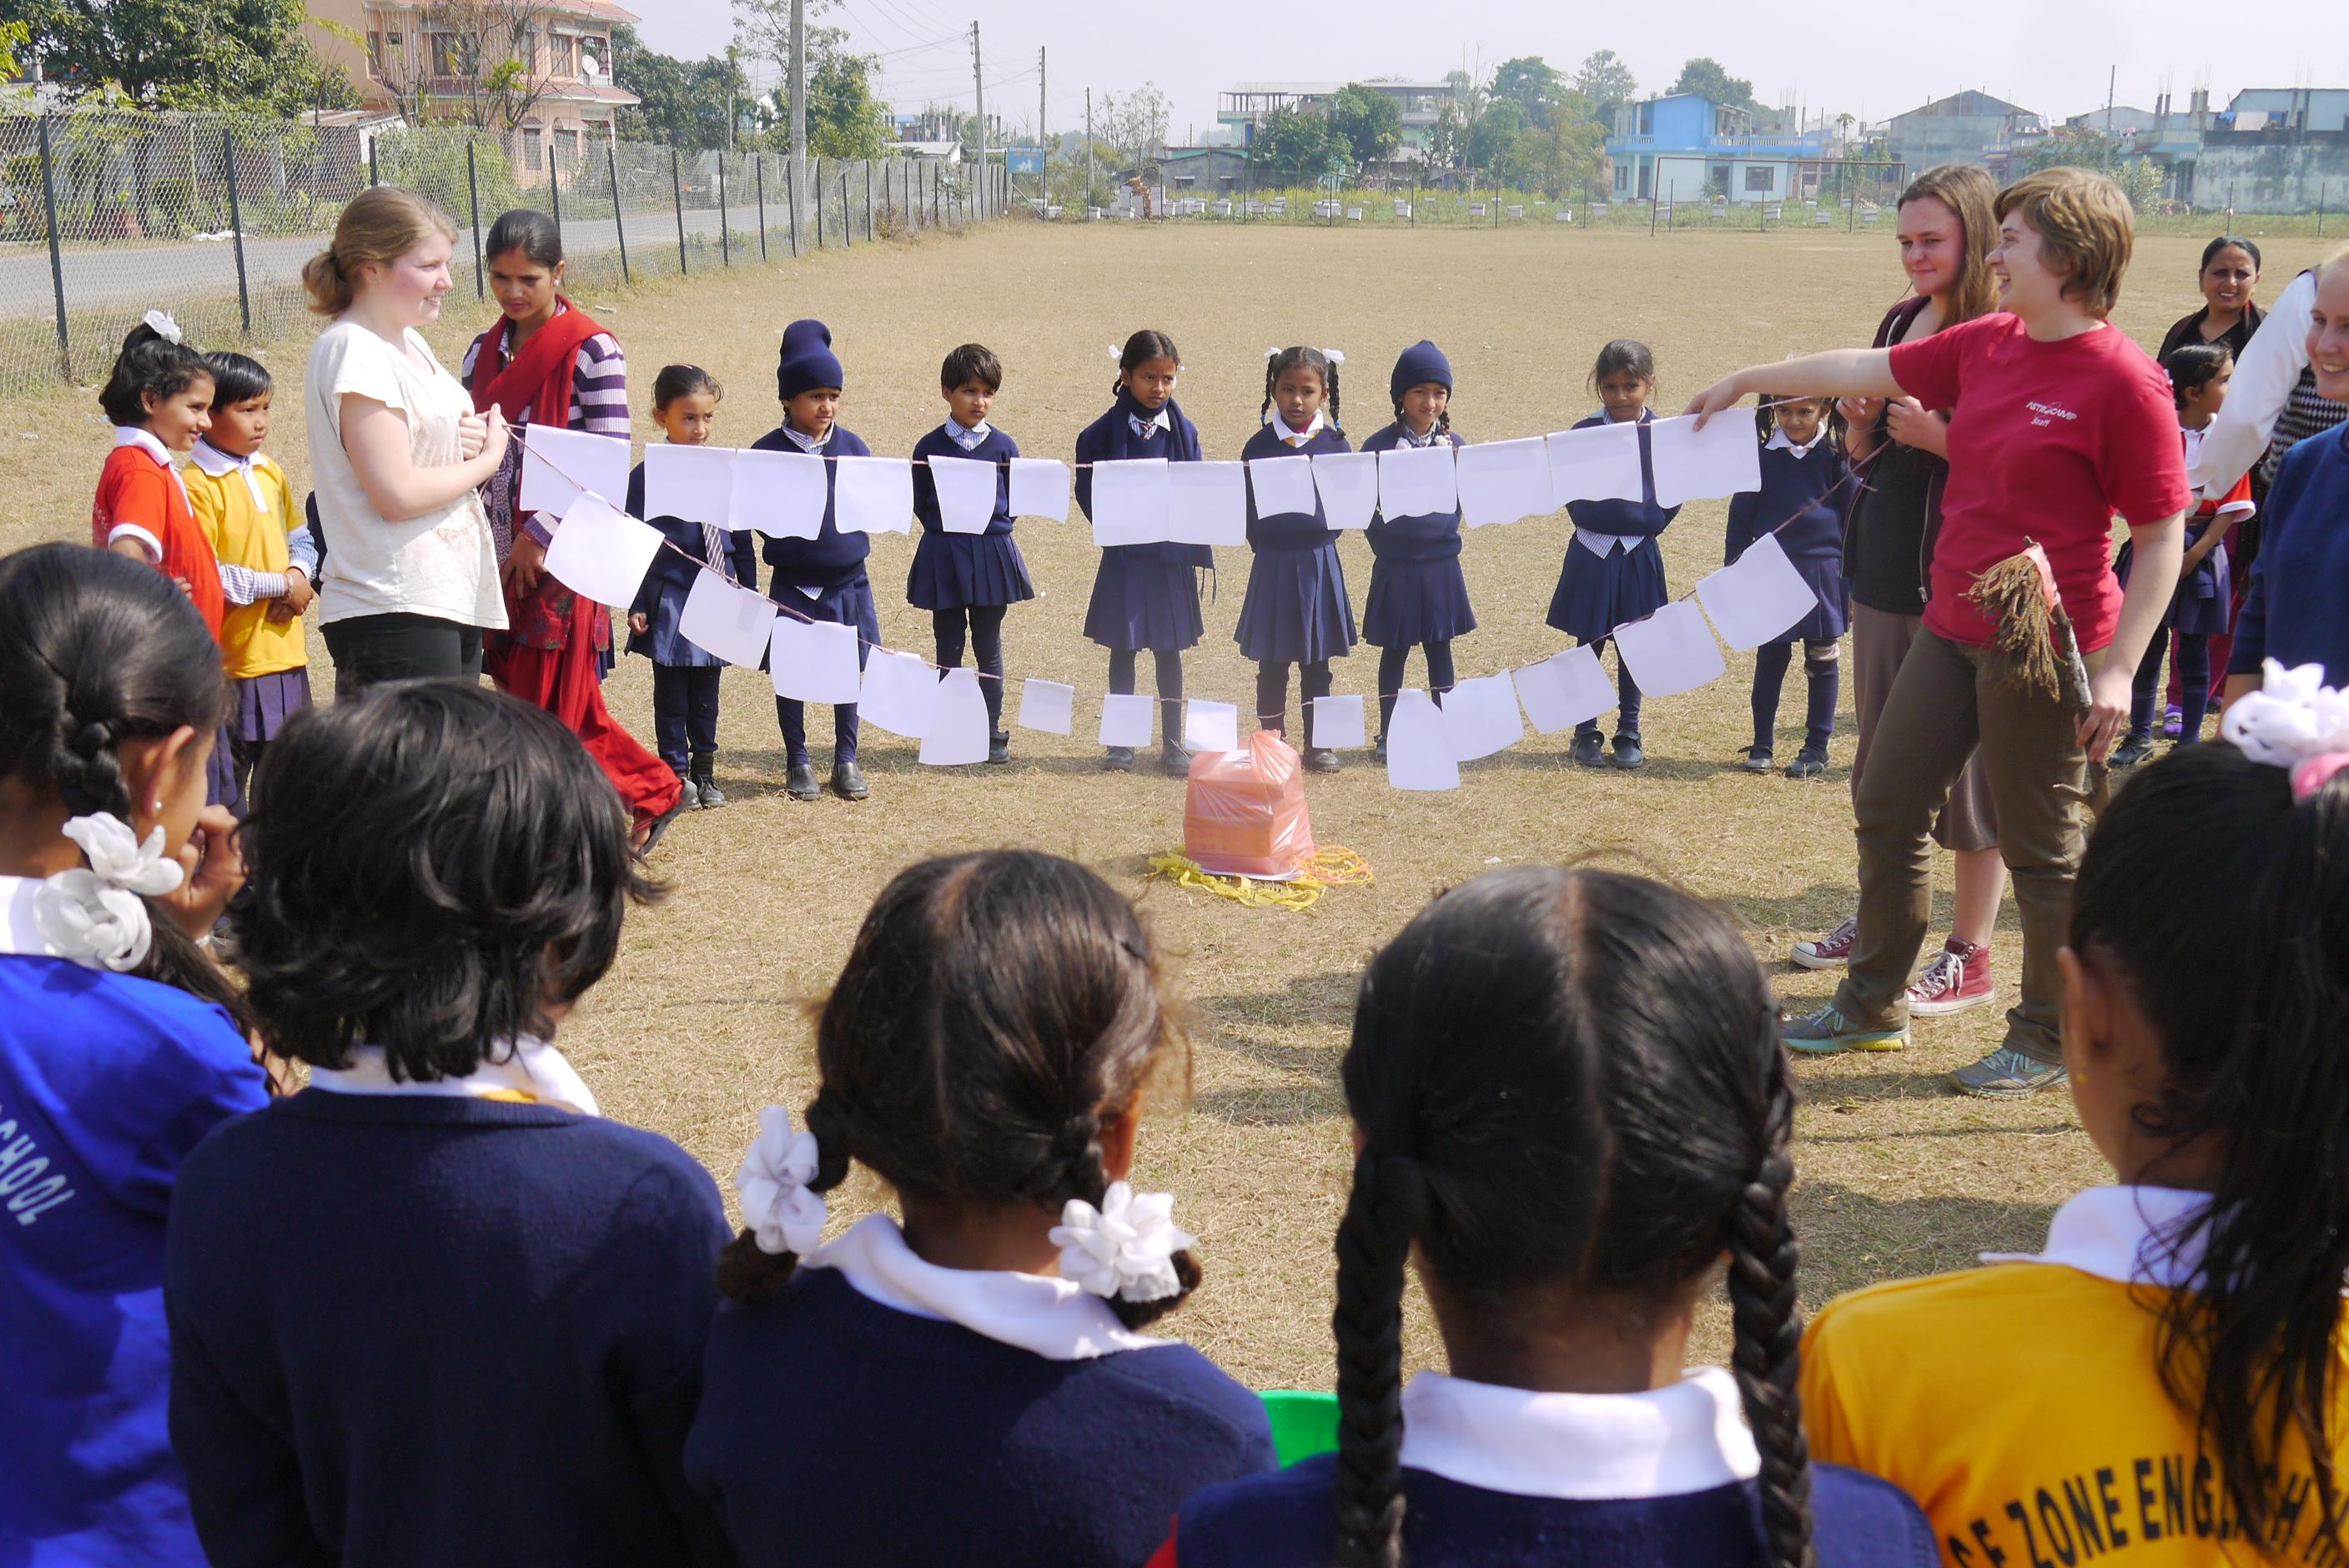 Projects Abroad volunteers working with children in Nepal are demonstrating how to brush your teeth in a school Childcare project.